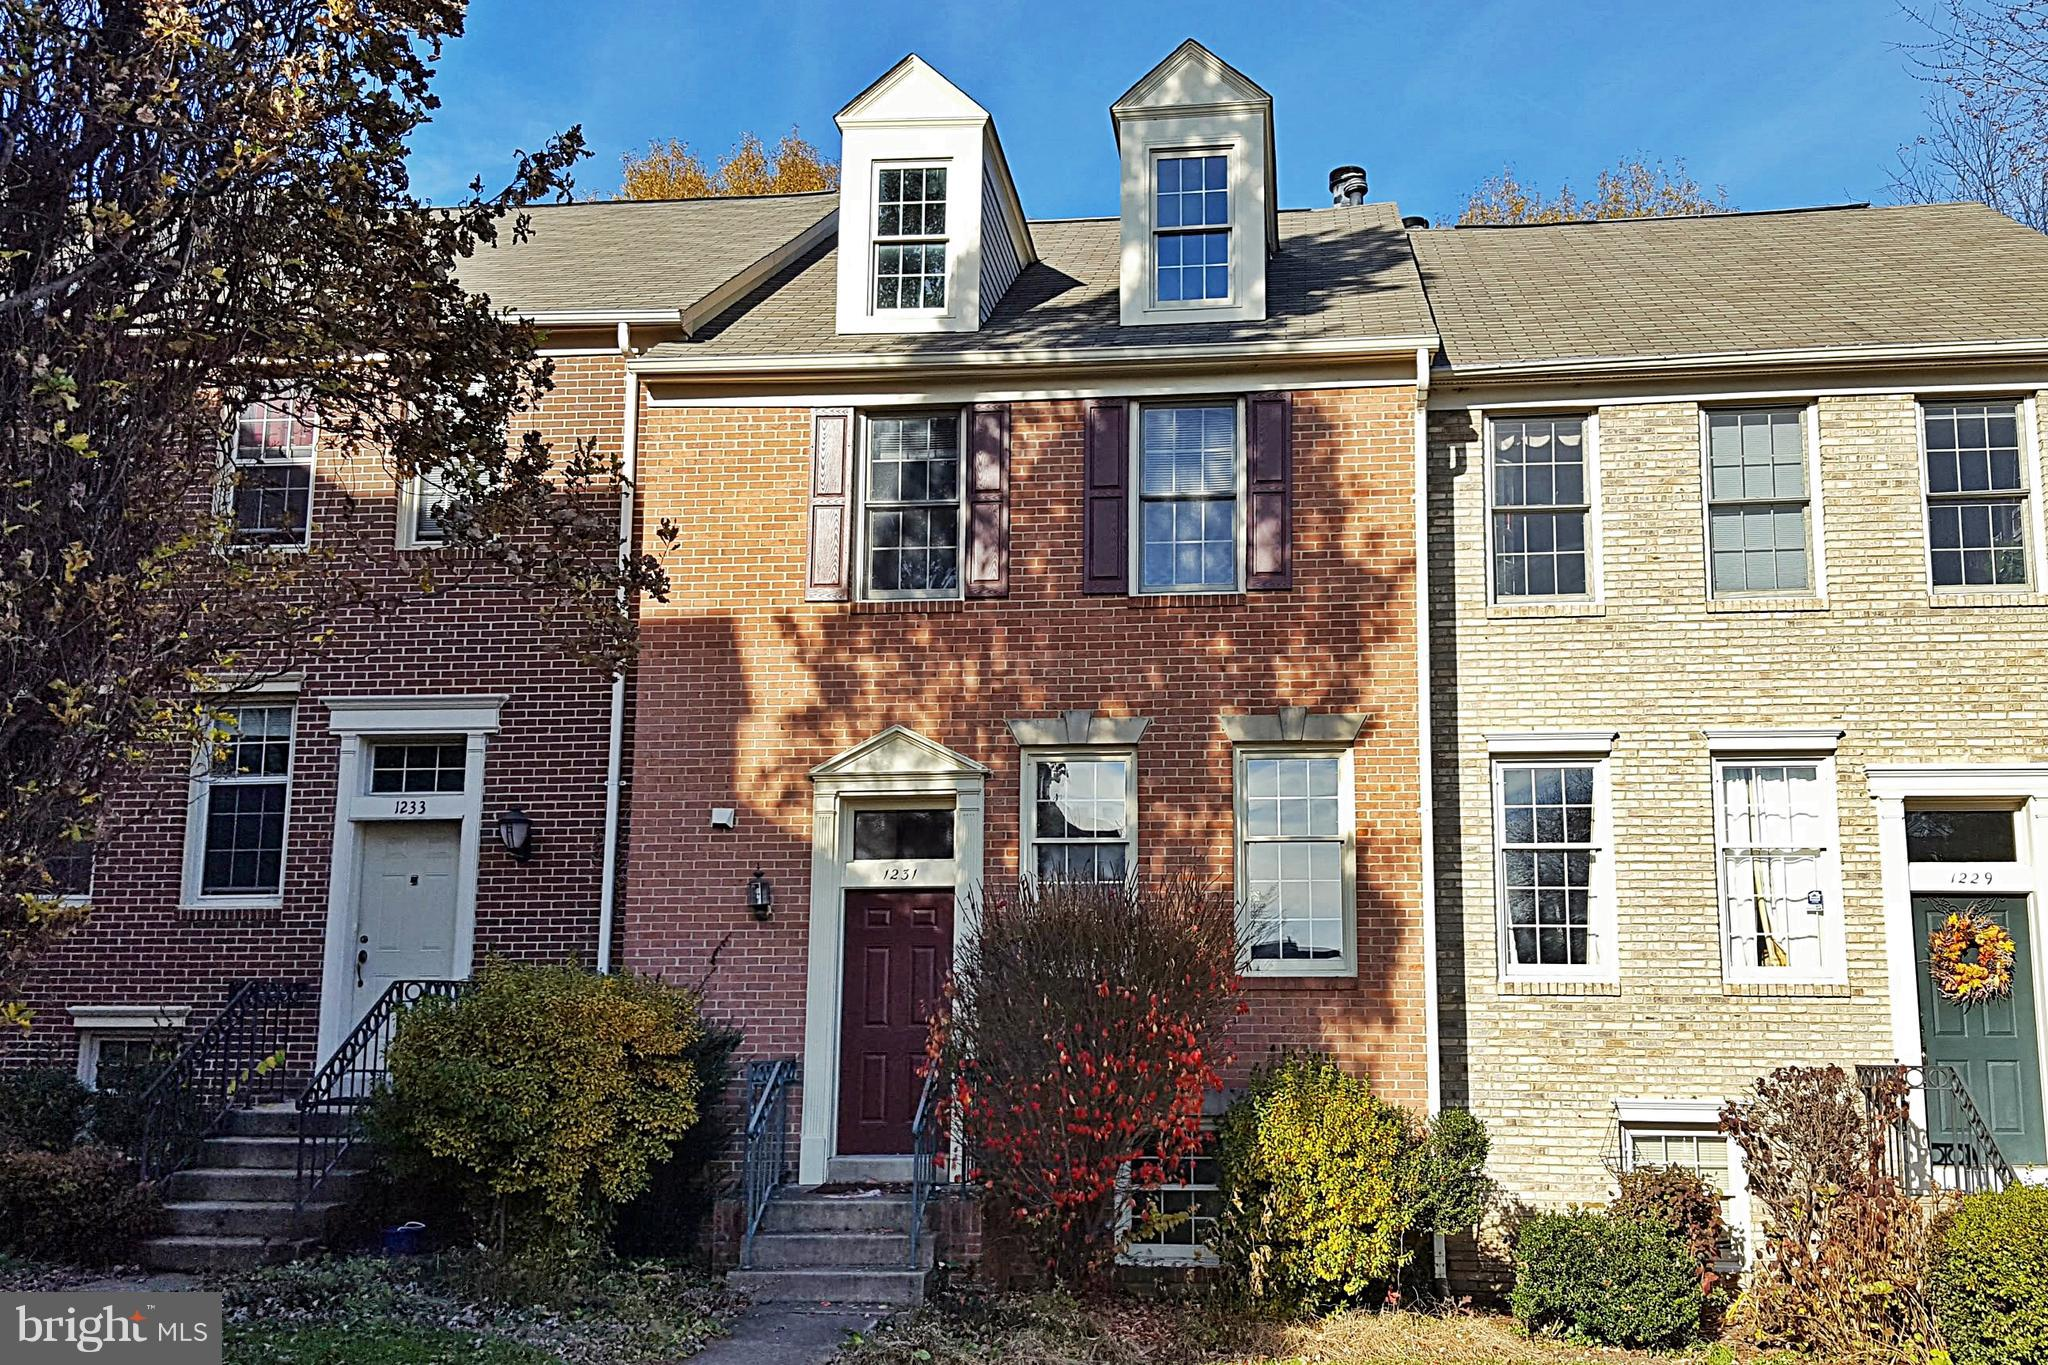 OPEN HOUSE Sunday, 1/20, 1-3pm.  Stately townhouse in sought after Quaker Hill Community, in close-in Alexandria City.  Only 1.5 mile to King St. Metro or Eisenhower Ave. Metro. 2,020 sq. ft. on 3 levels.  Master suite with walk-in closet & luxury master bath - oversized soaking tub & separate shower.  Inviting Living & Dining  Room with Peninsula fireplace (woodburning) - walks out to space rear deck. Fully finished lower level includes Recreation Room with wet bar, cooktop, fridge, and spare bedroom with full bath - walks out to fully fenced brick paver patio.  Abundant closet storage space. 2 assigned parking spots. Community Pool & Clubhouse. Sold in as-is condition.  Best Buy in Quaker Hill.